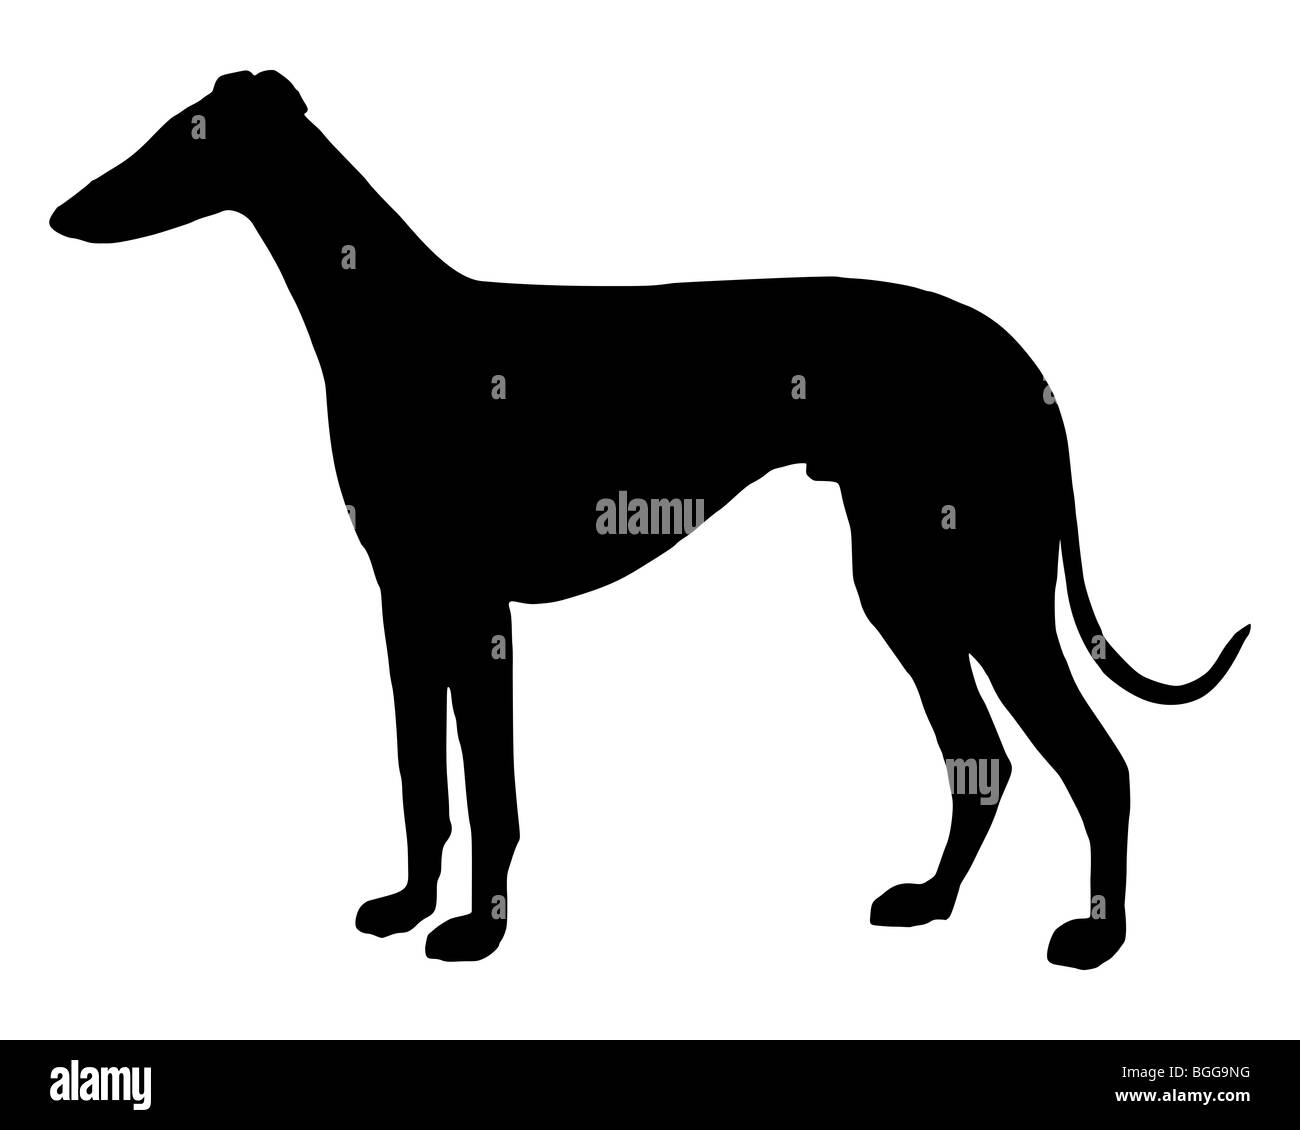 The black silhouette of a shorthaired Sighthound Stock Photo